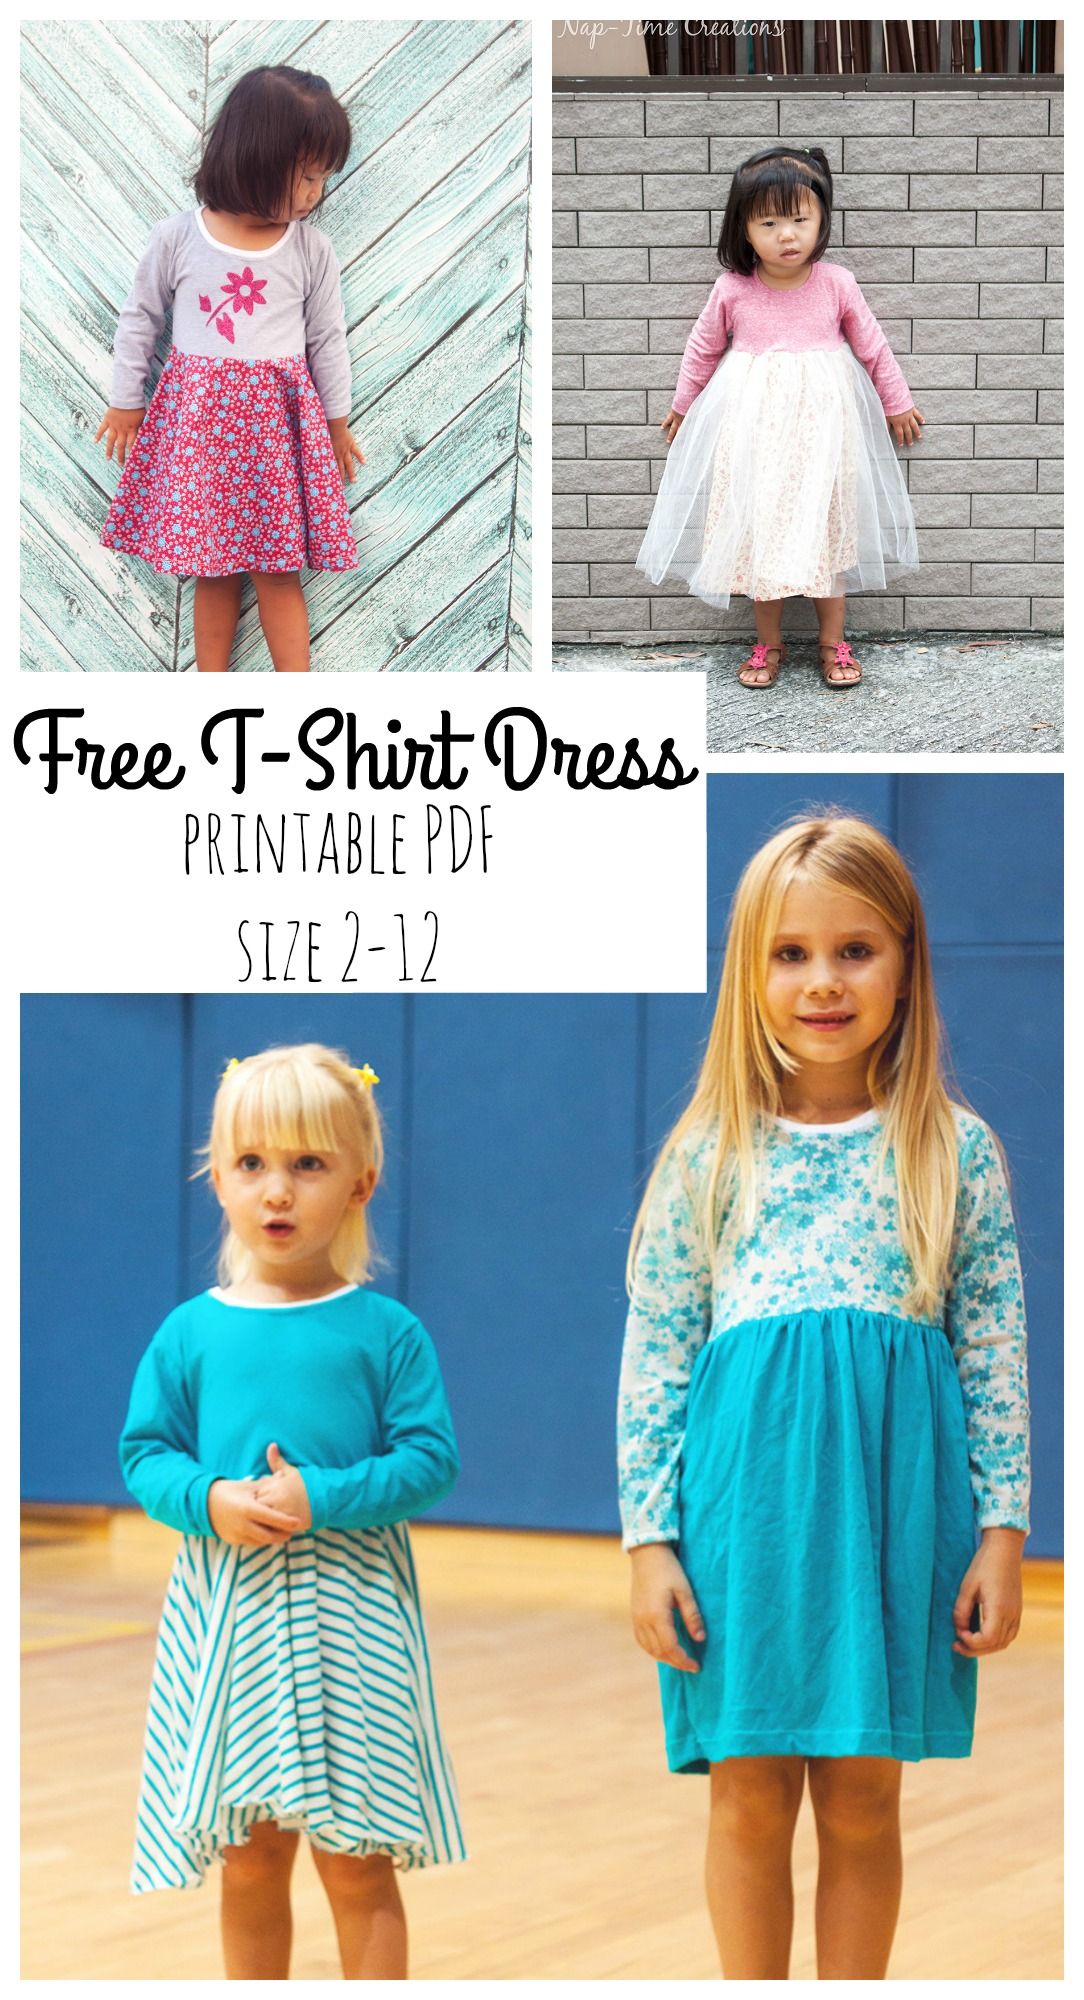 T-Shirt Dress Free PDF Pattern from Naptime Creations